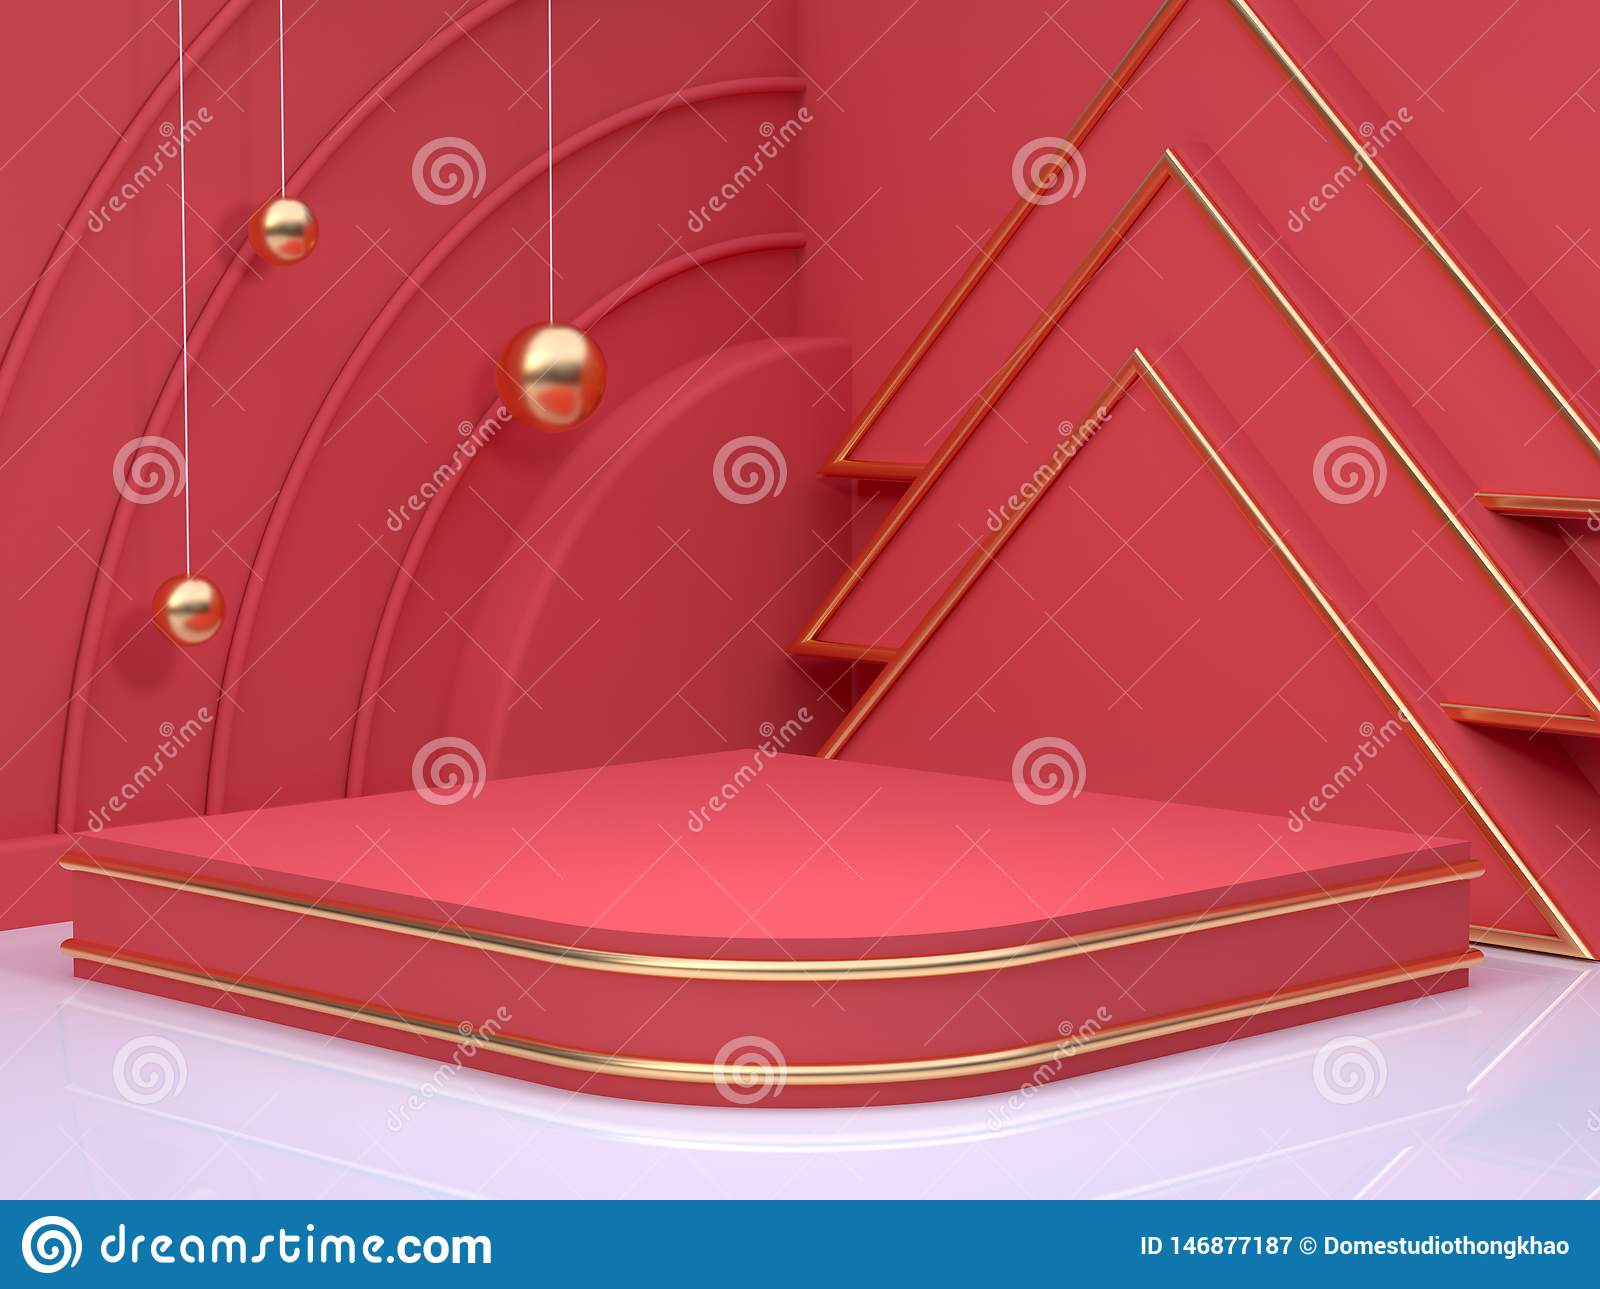 New year concept 3d rendering gold sphere red scene wall floor corner abstract minimal christmas holiday